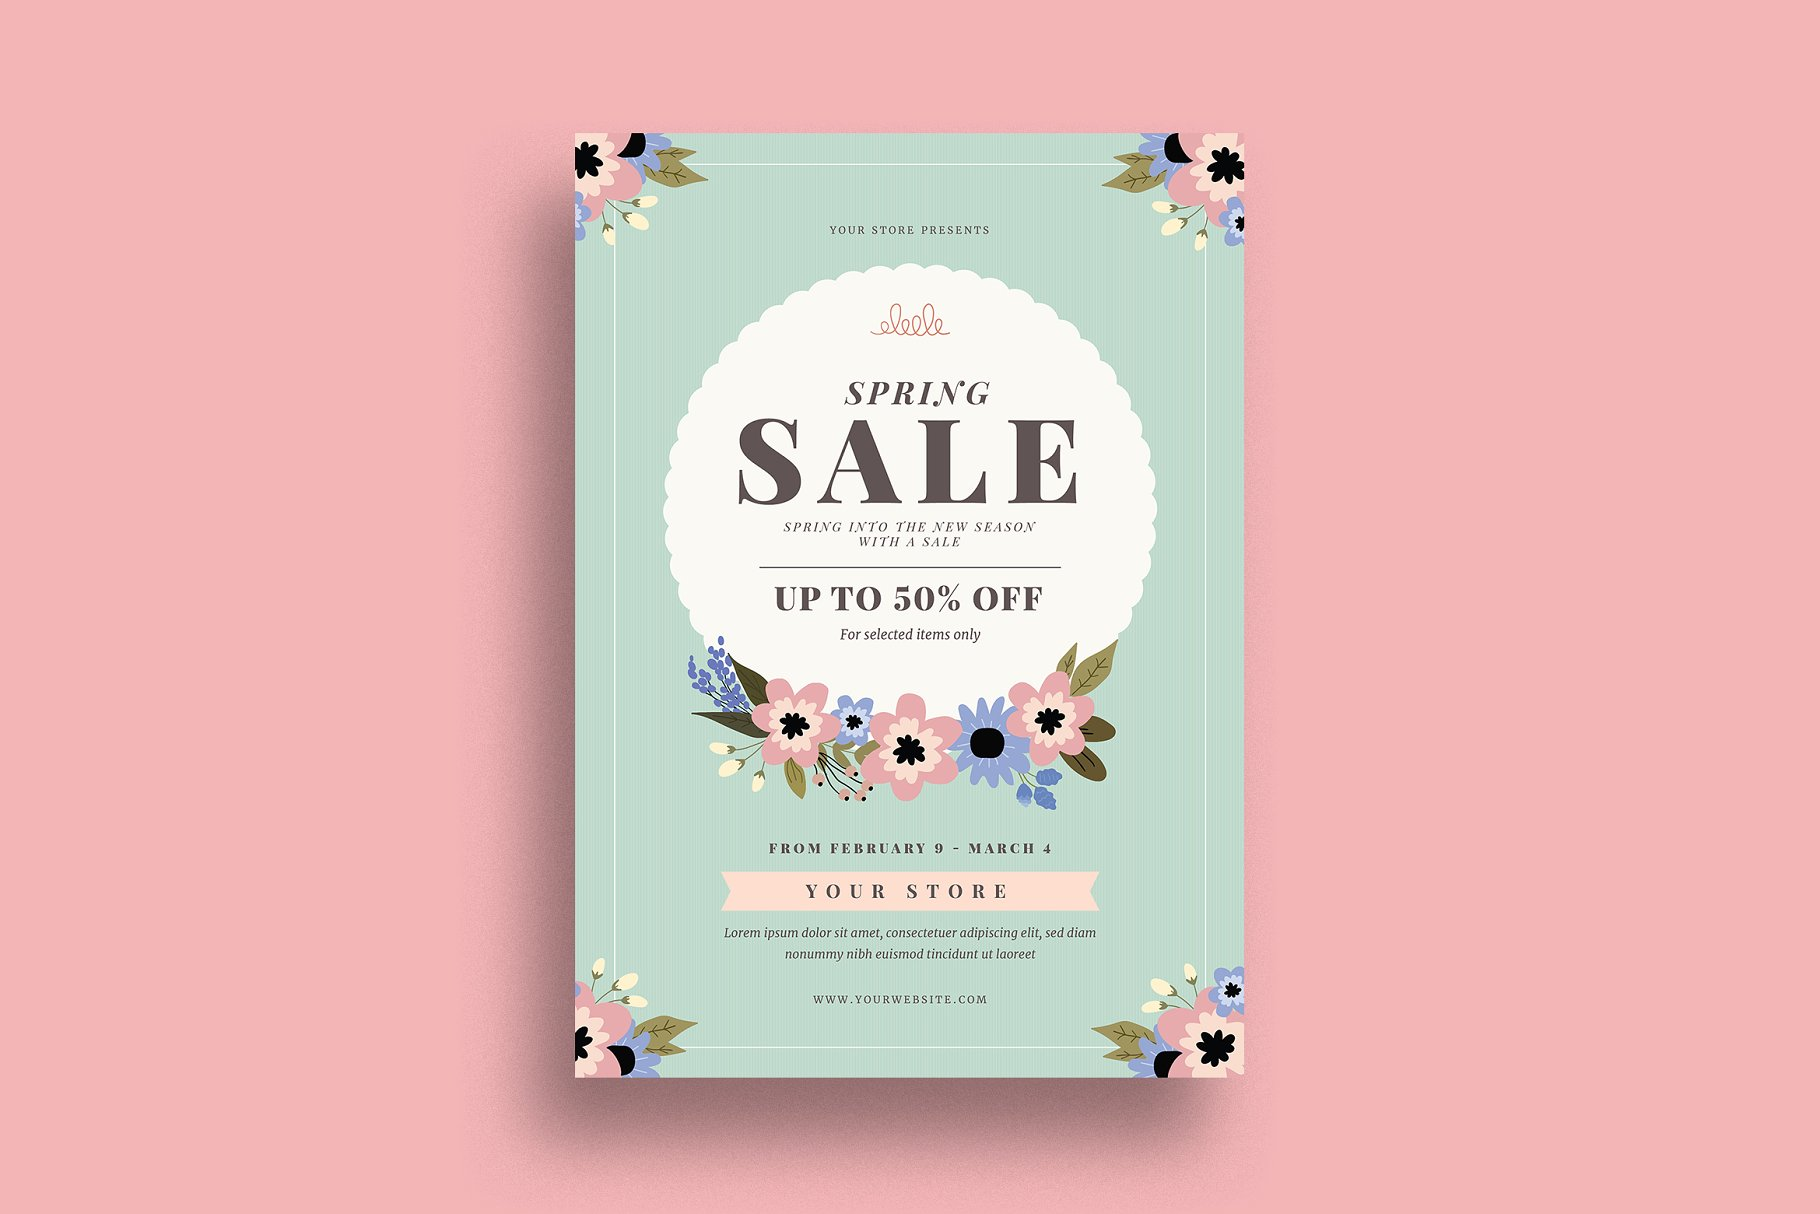 Spring Sale Event Flyer Flyer Templates Creative Market Pro